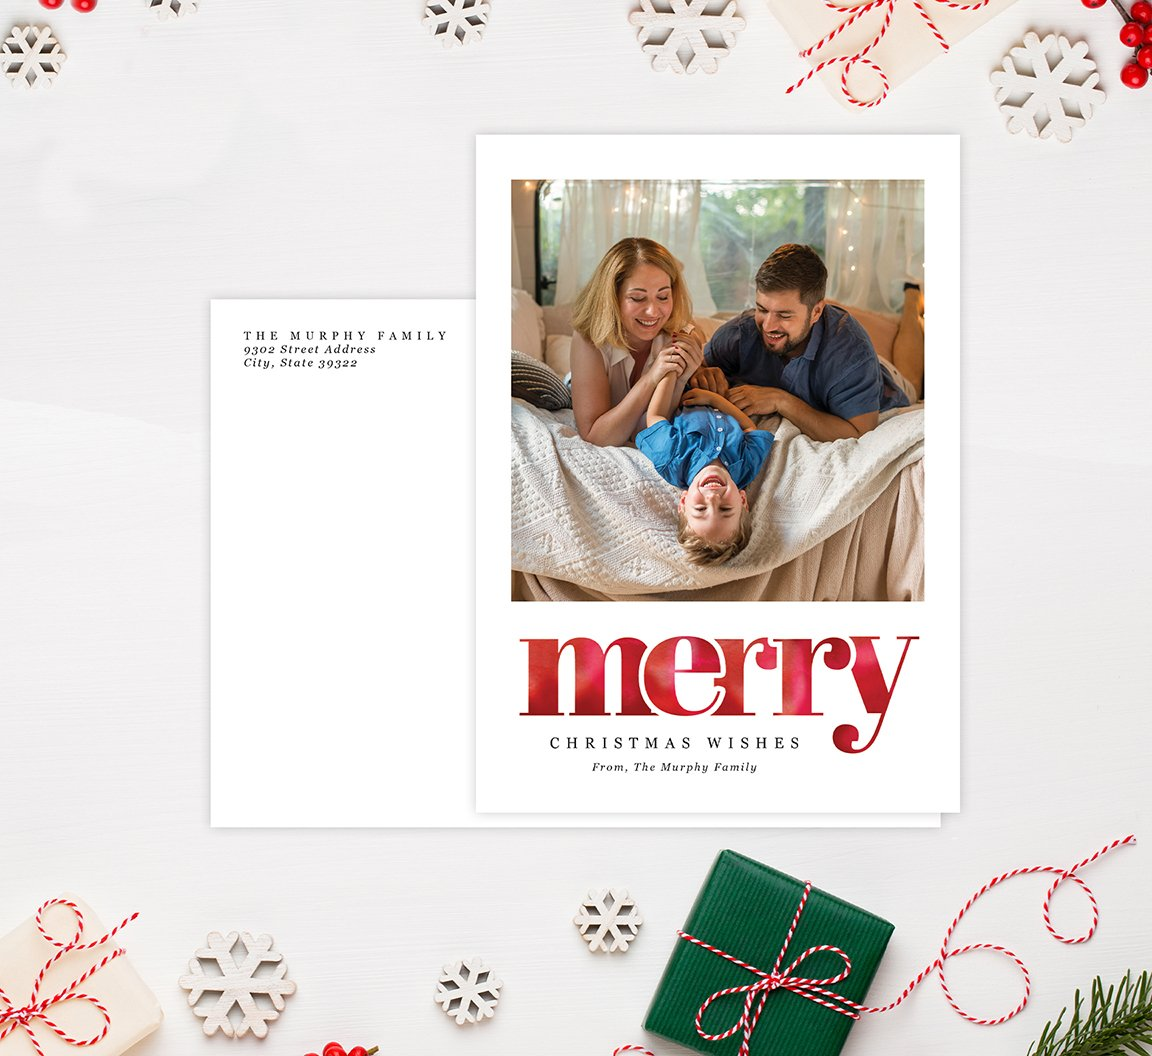 Merry Holiday Card Mockup; Holiday card with envelope and return address printed on it.